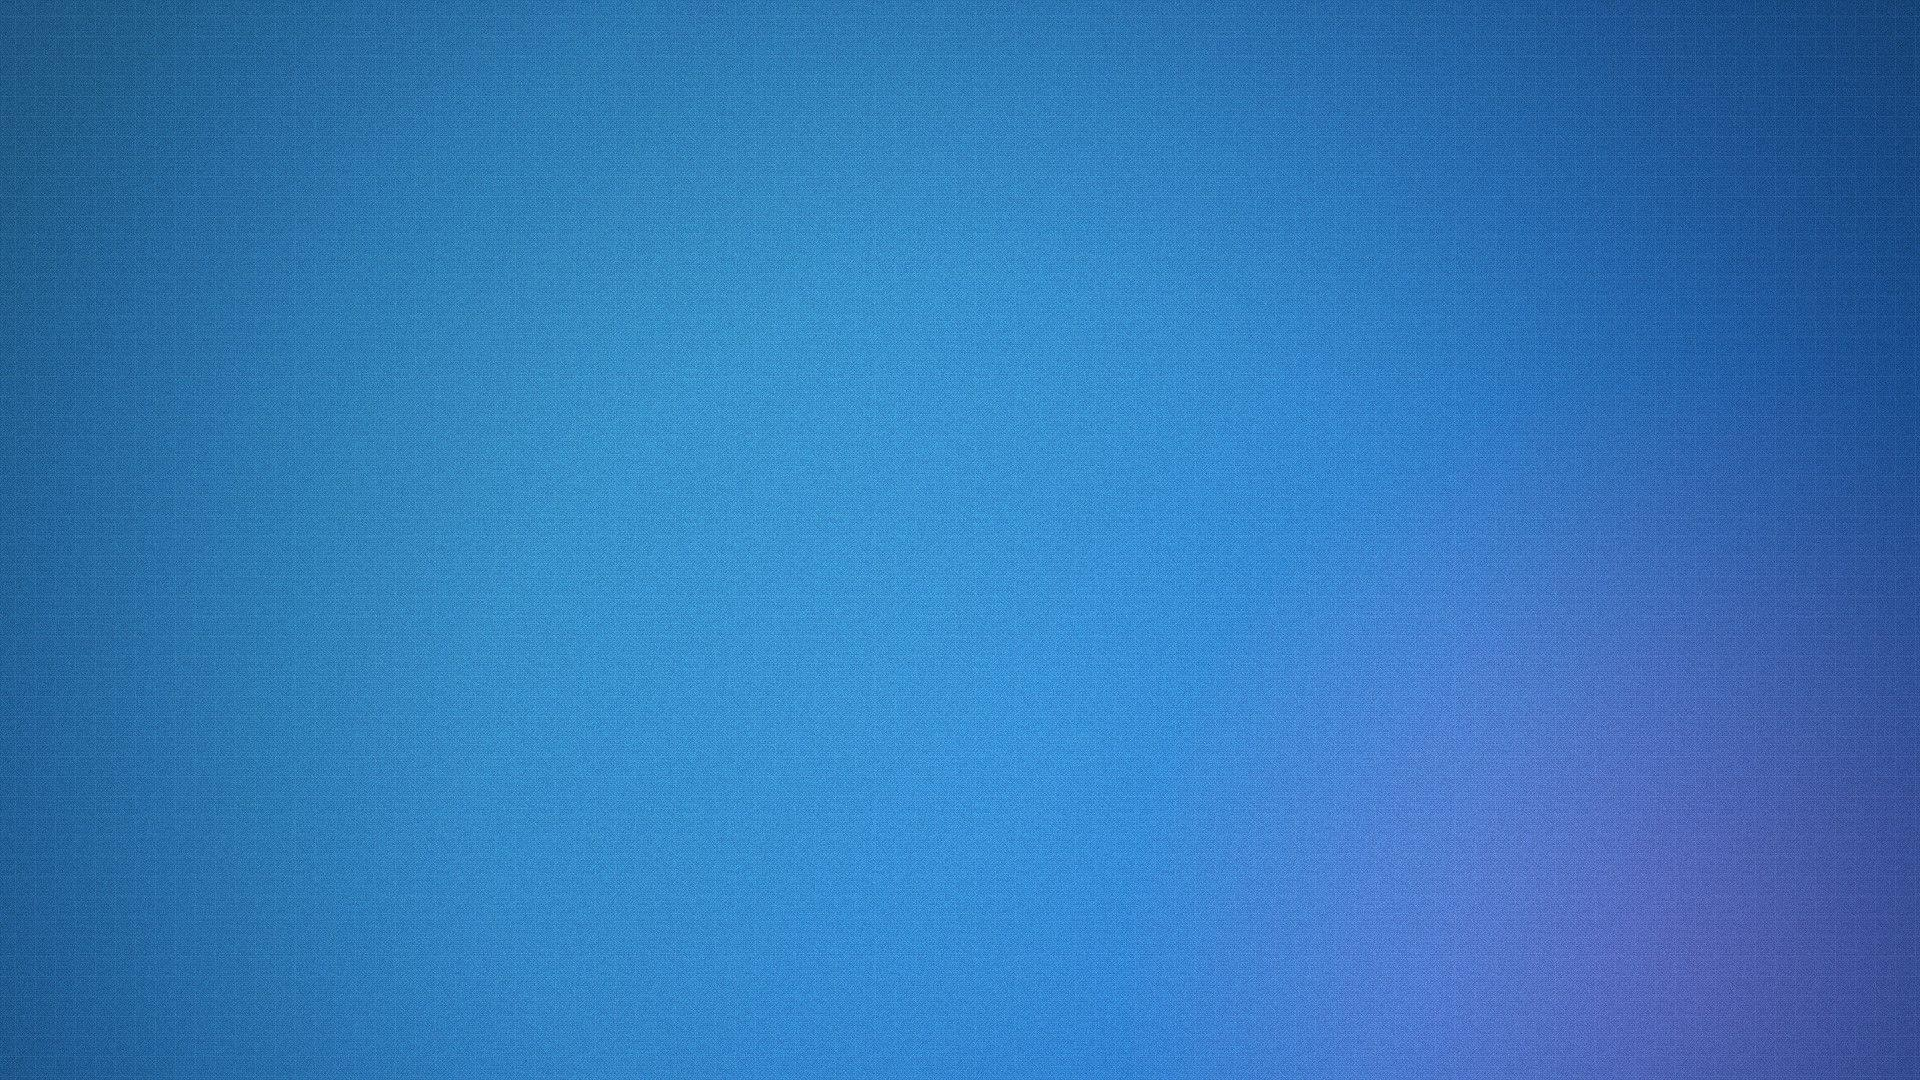 Free Download Light Blue Backgrounds 1920x1080 For Your